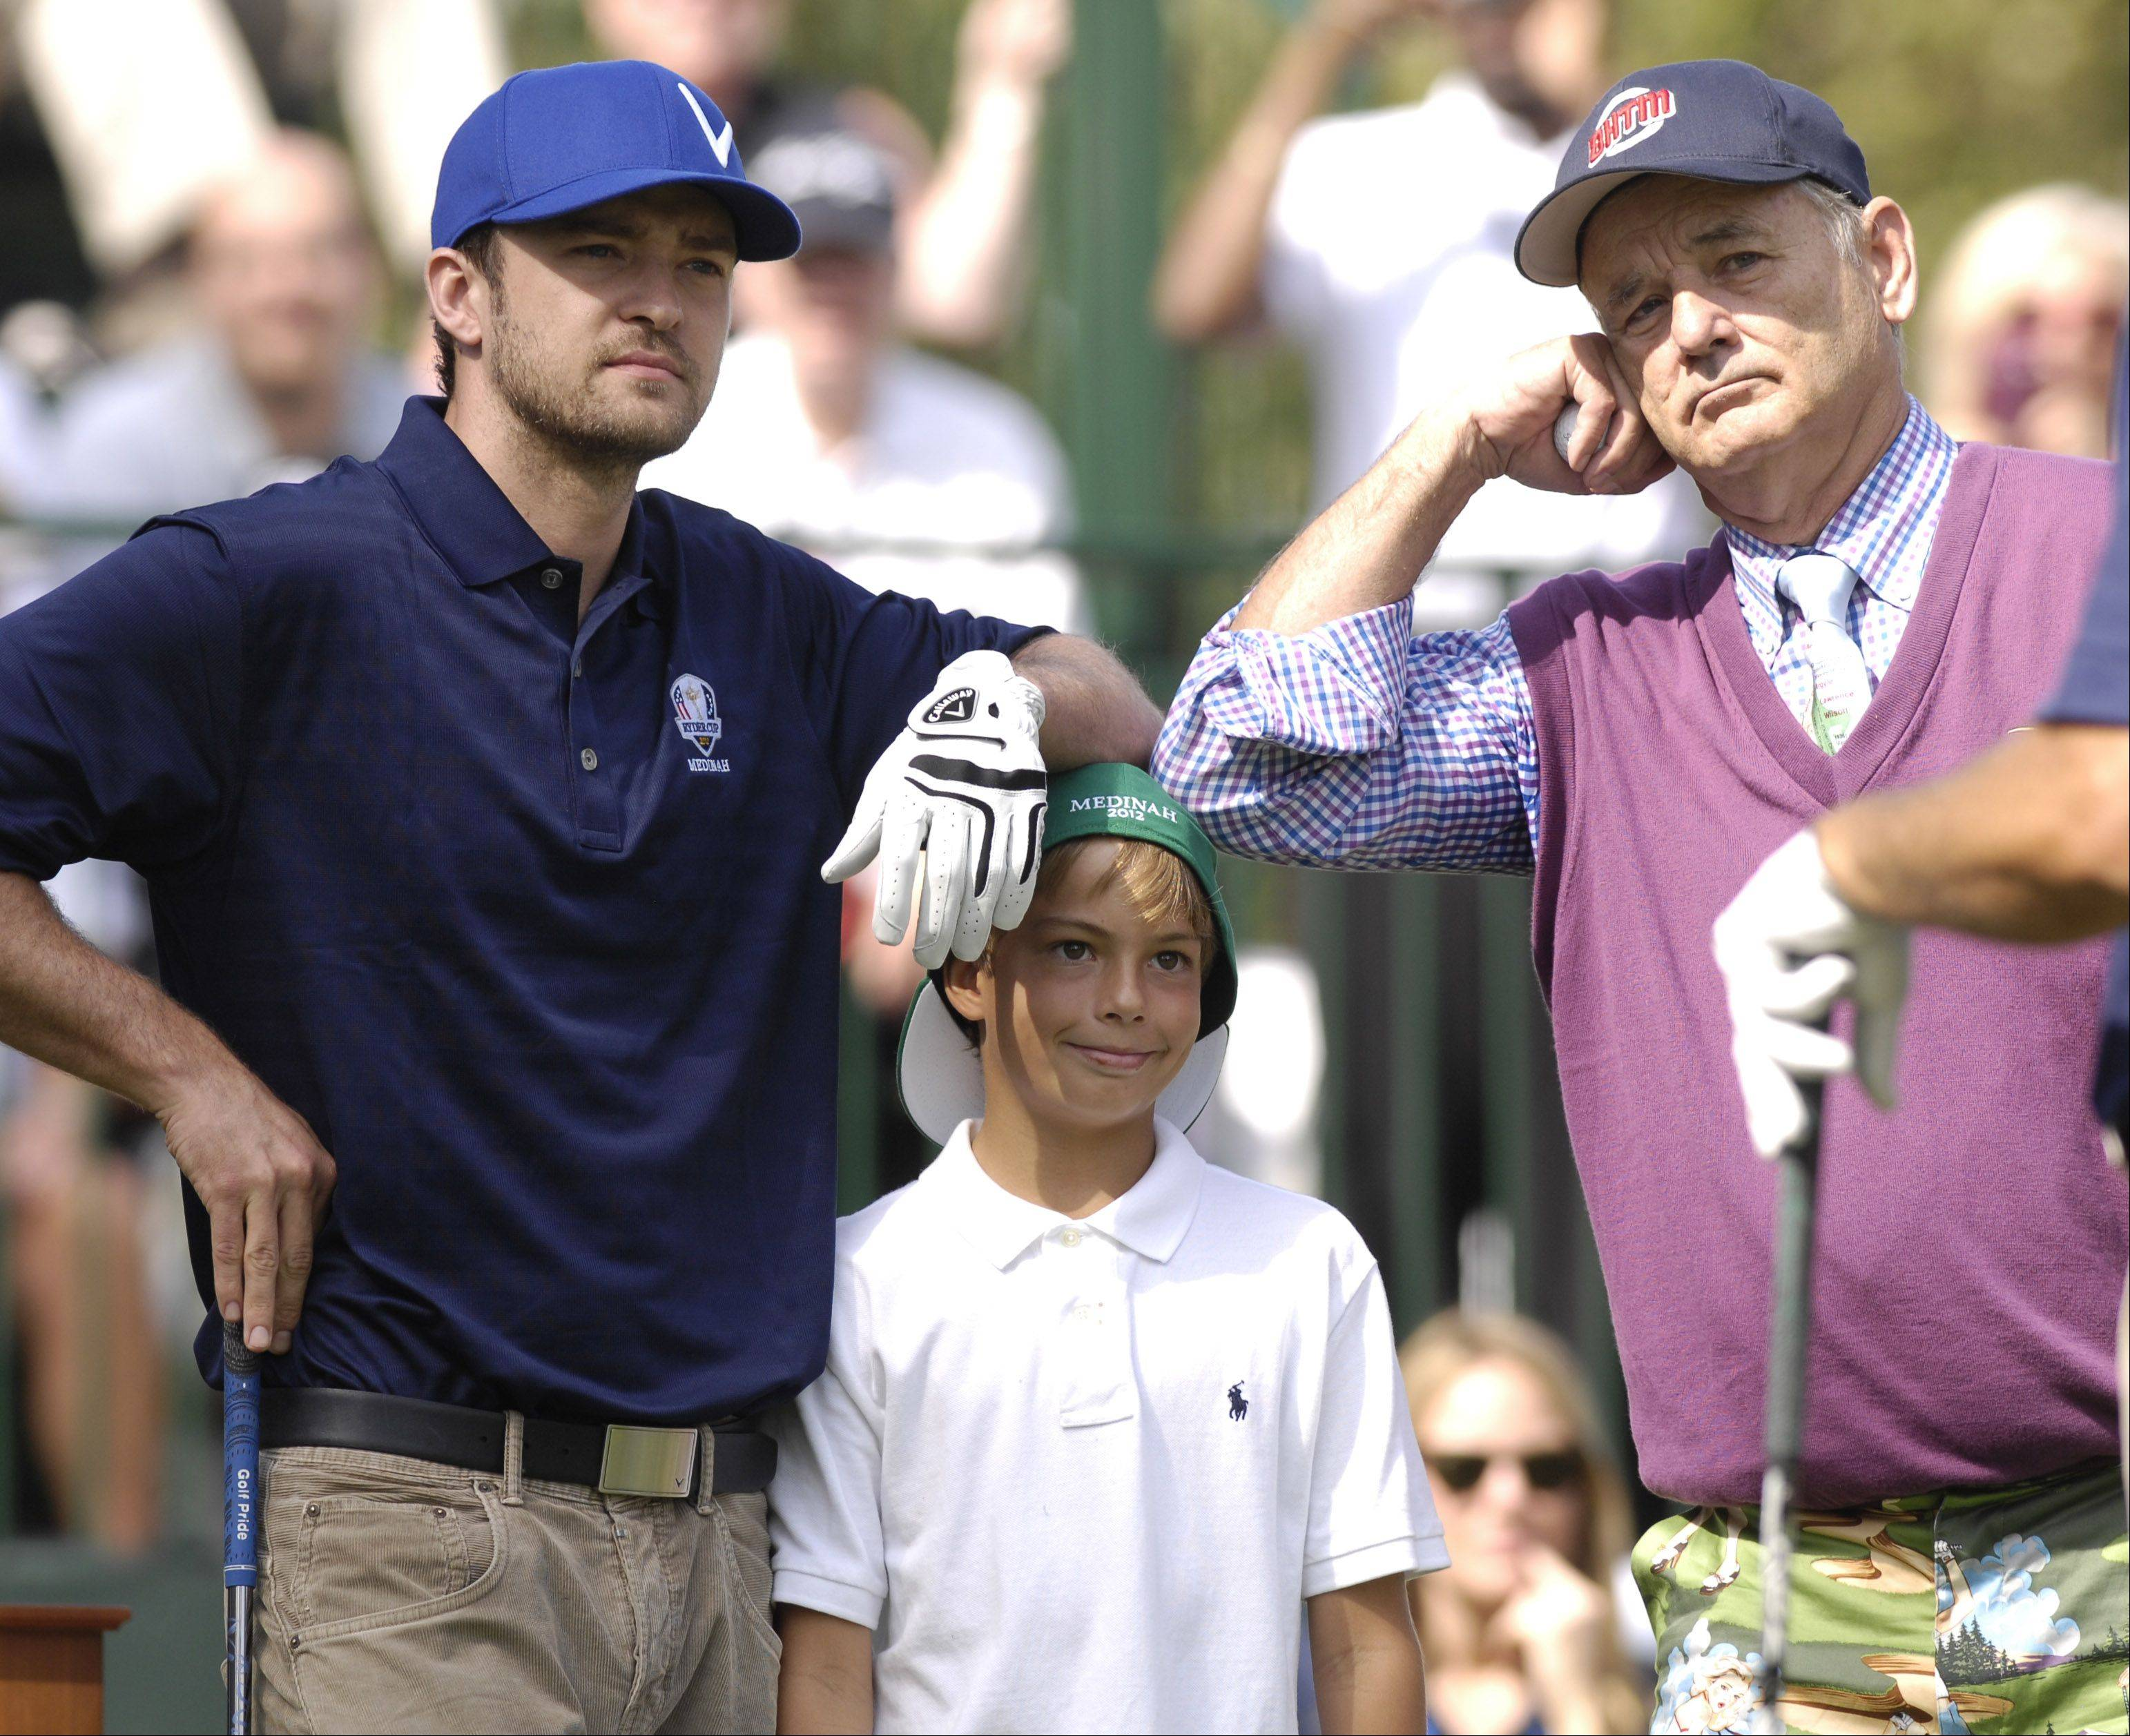 Mark Black/mblack@dailyherald.comJustin Timberlake and Bill Murray have some fun with a young golf fan before teeing off Tuesday at Medinah Country Club.